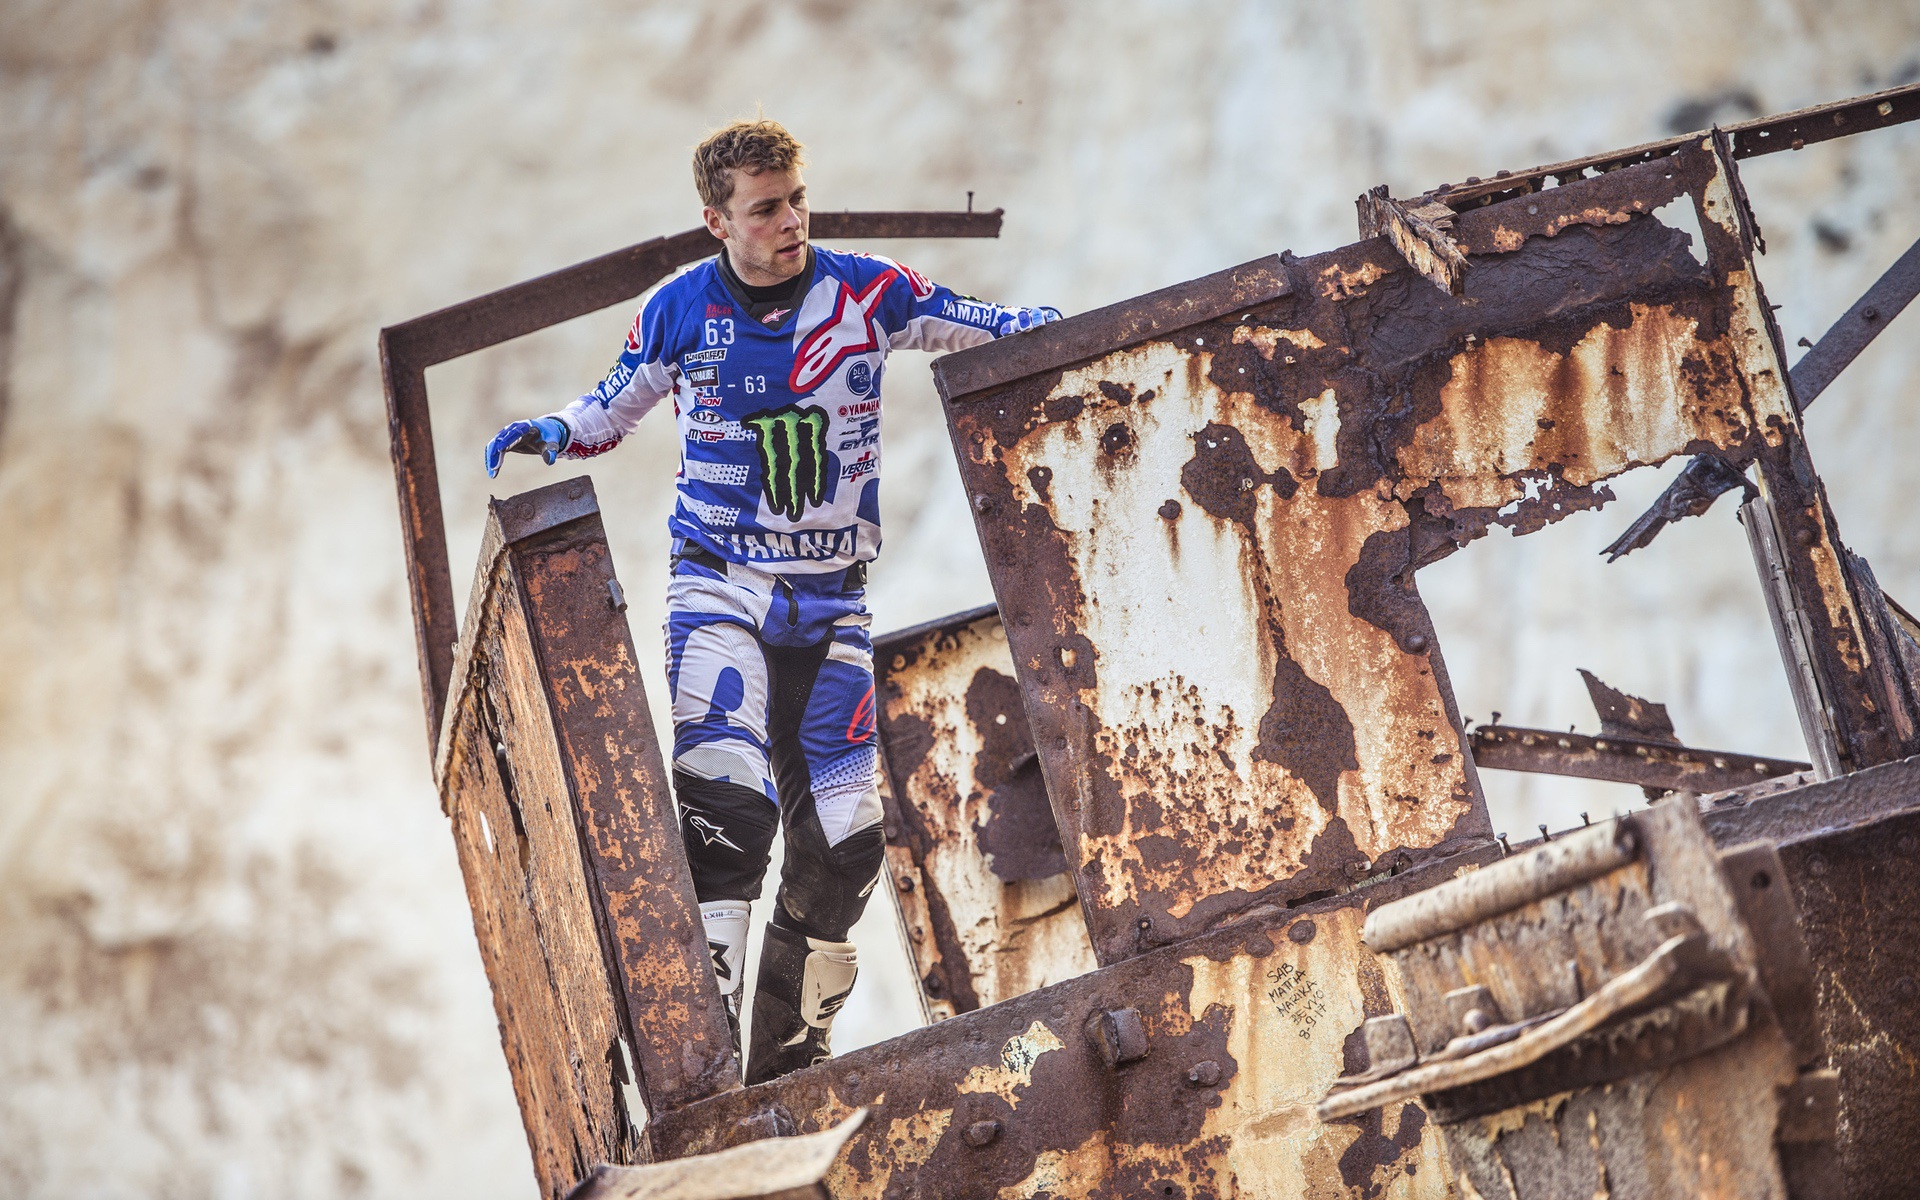 Romain_Febvre_Monster_Energy_Shipwreck_0035